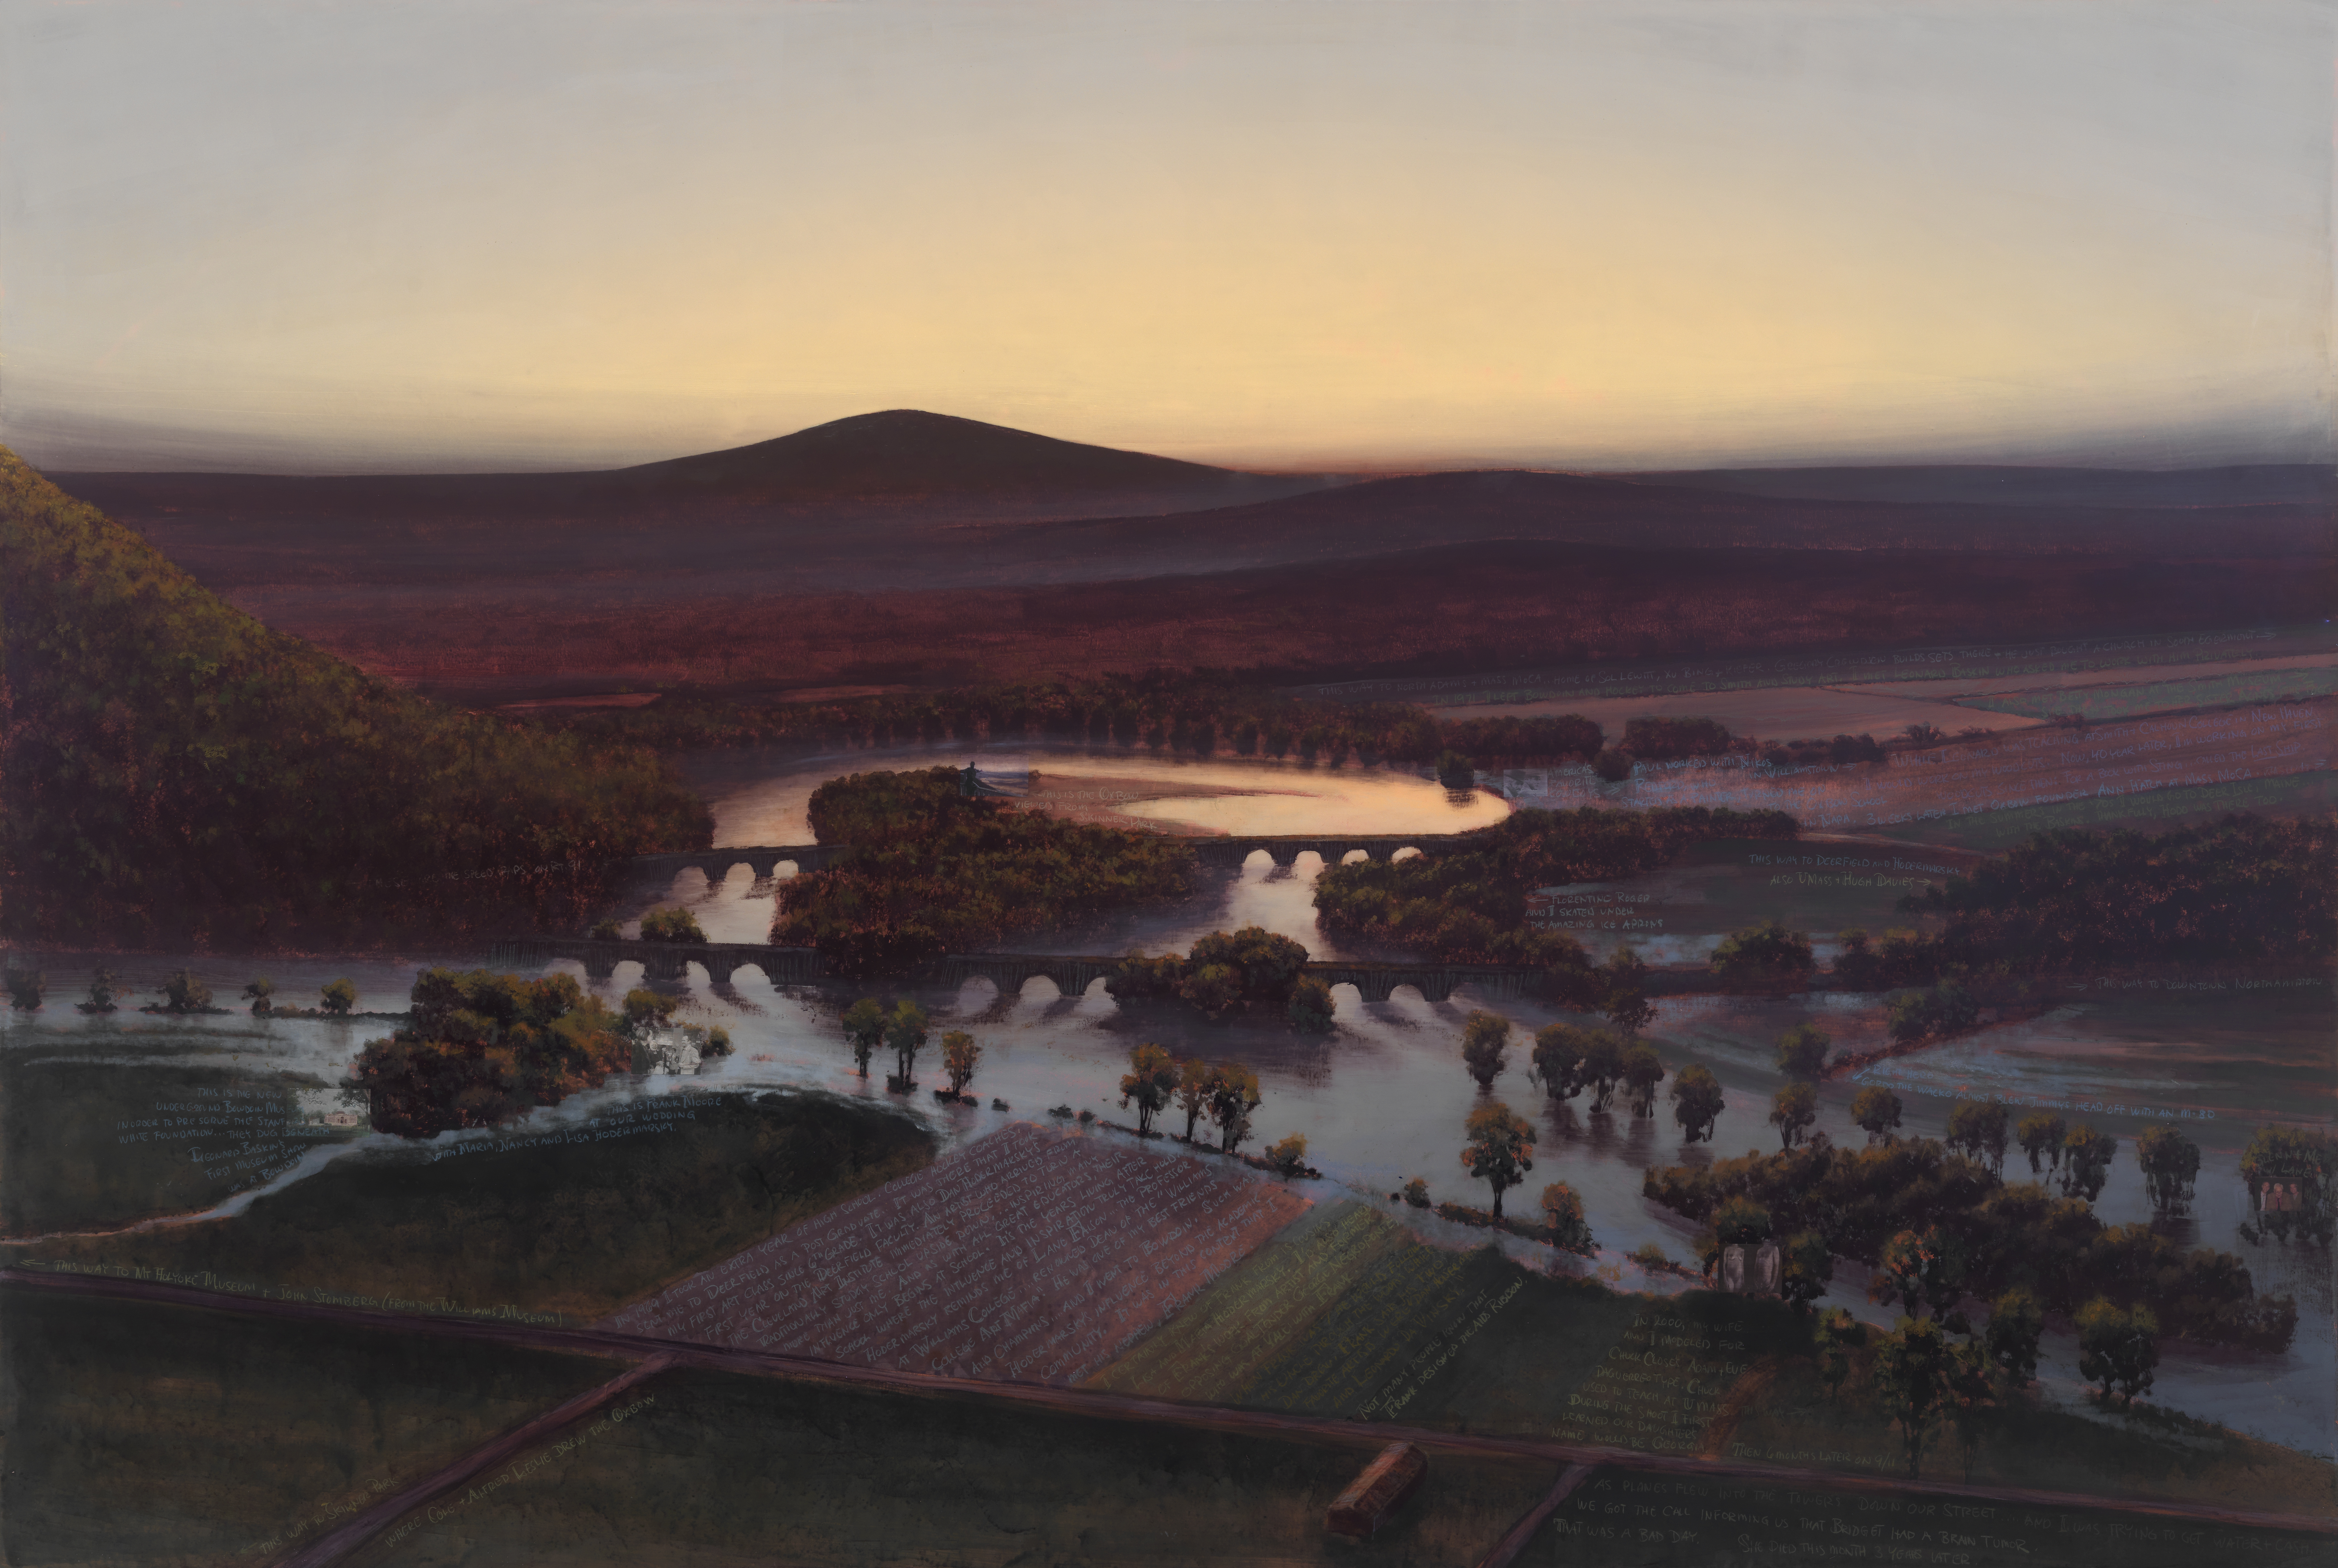 oxbow painting by Stephen bannock